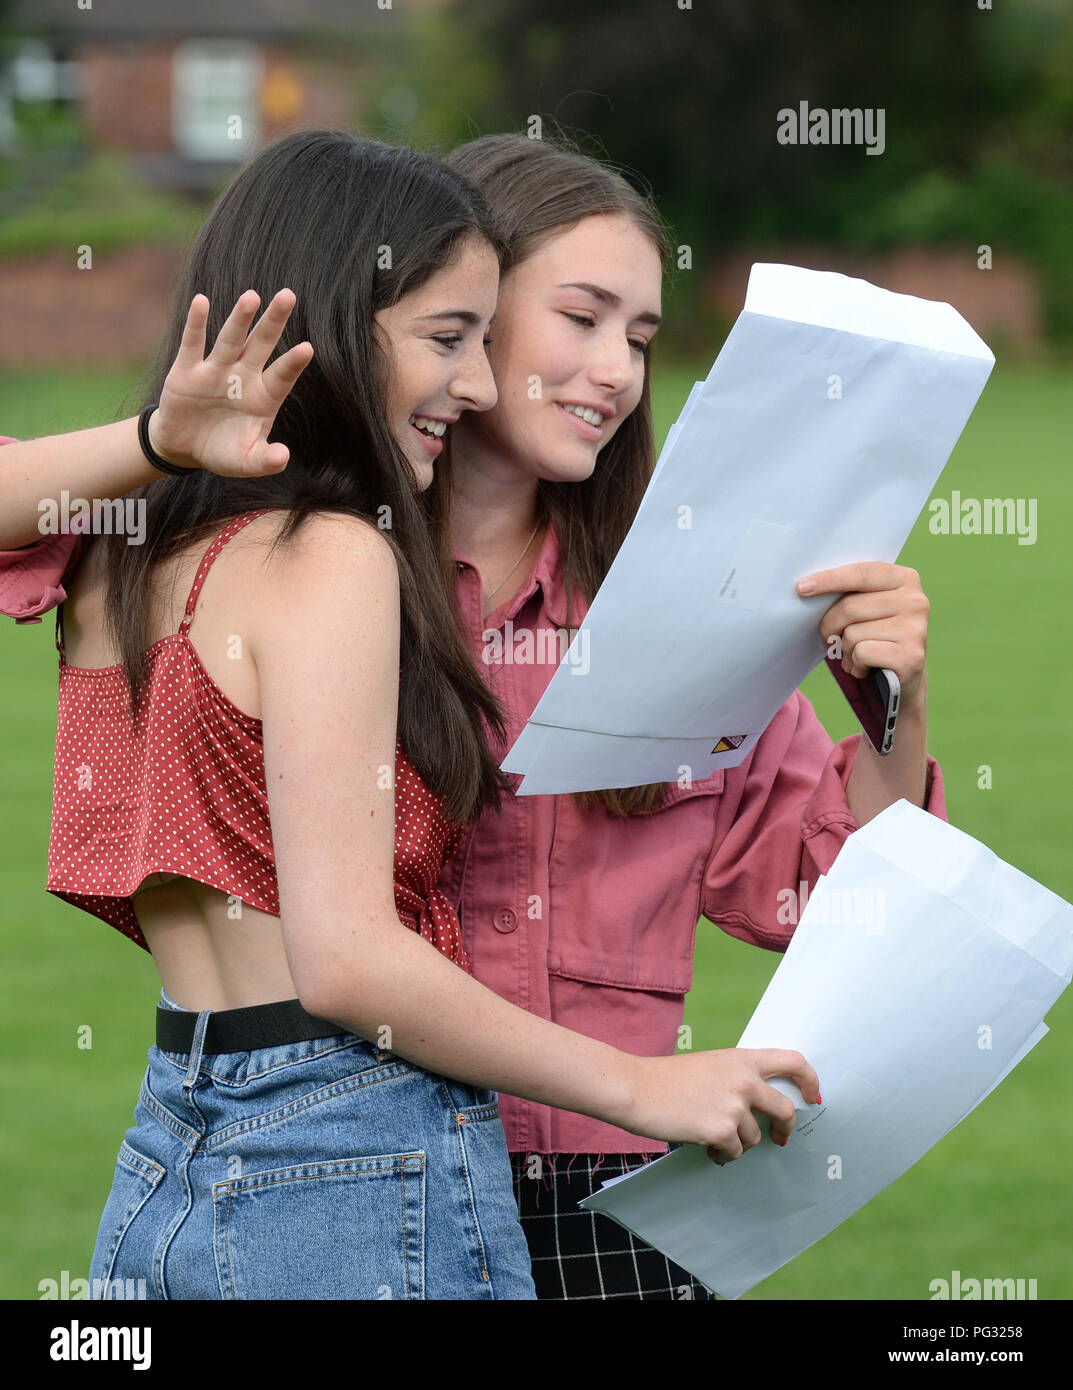 Manchester, UK. 23rd Aug, 2018. Sophie Ruben (left) and Abby Brown (right) celebrate their GCSE results at Withington Girl's School, Manchester. Photograph by Credit: Howard Walker/Alamy Live News Stock Photo